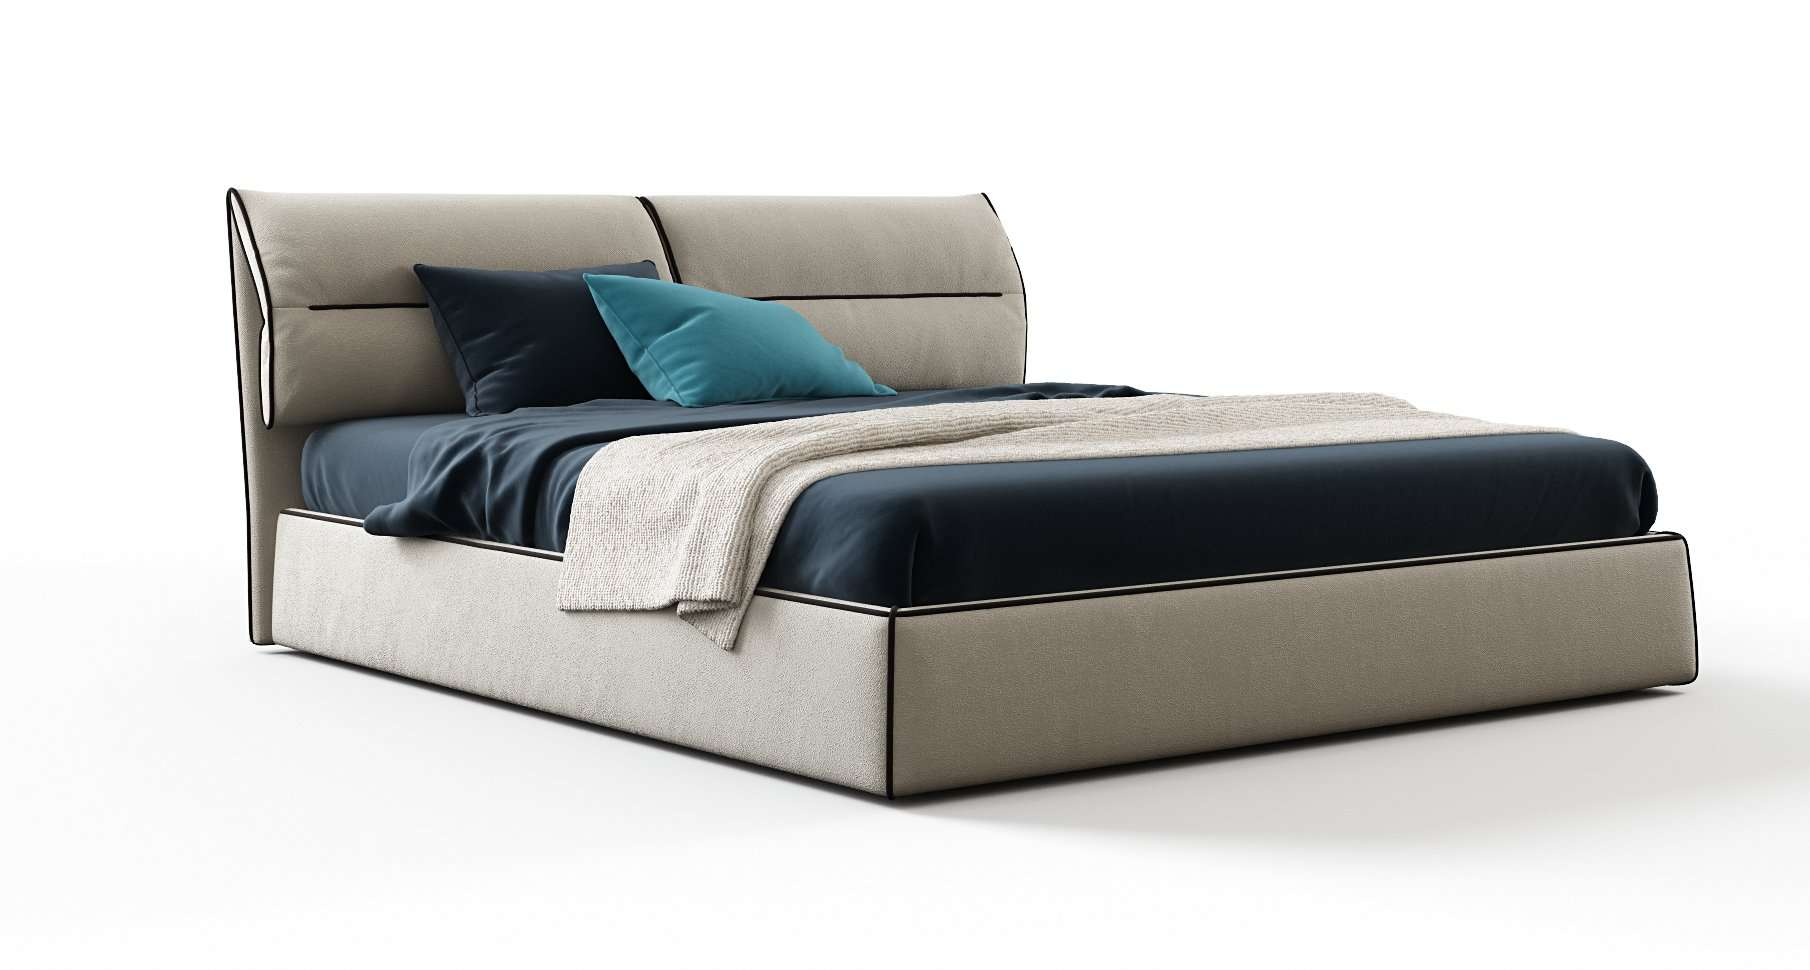 Limura bed